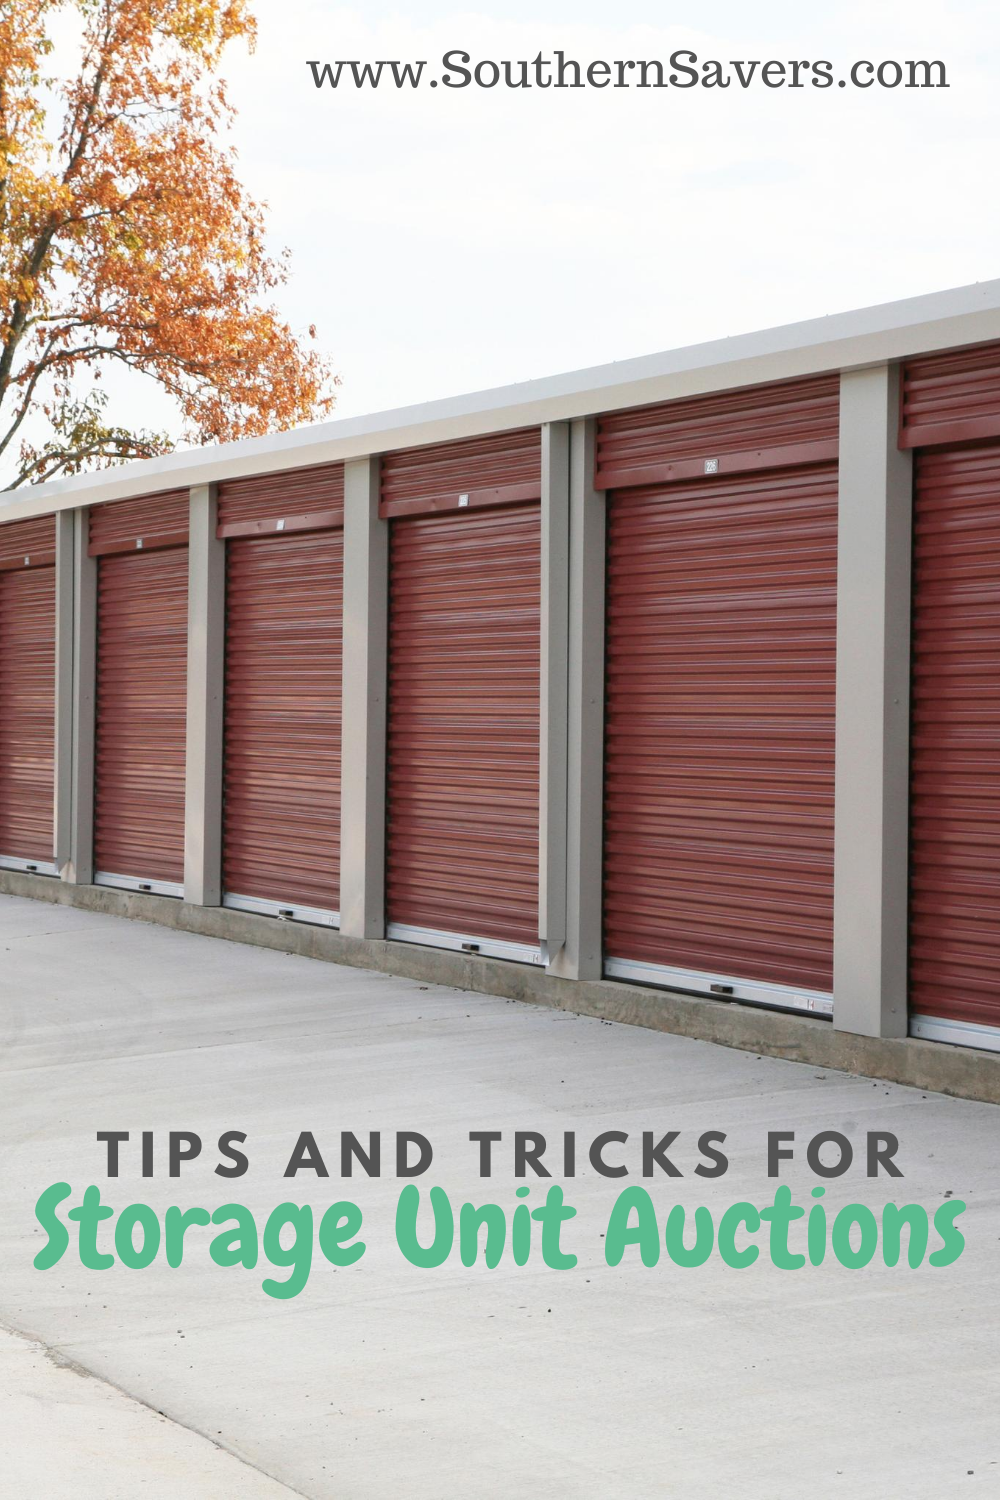 Storage unit auctions are risky, but the risk can pay off. See these tips and tricks to decide if going to one is right for you!